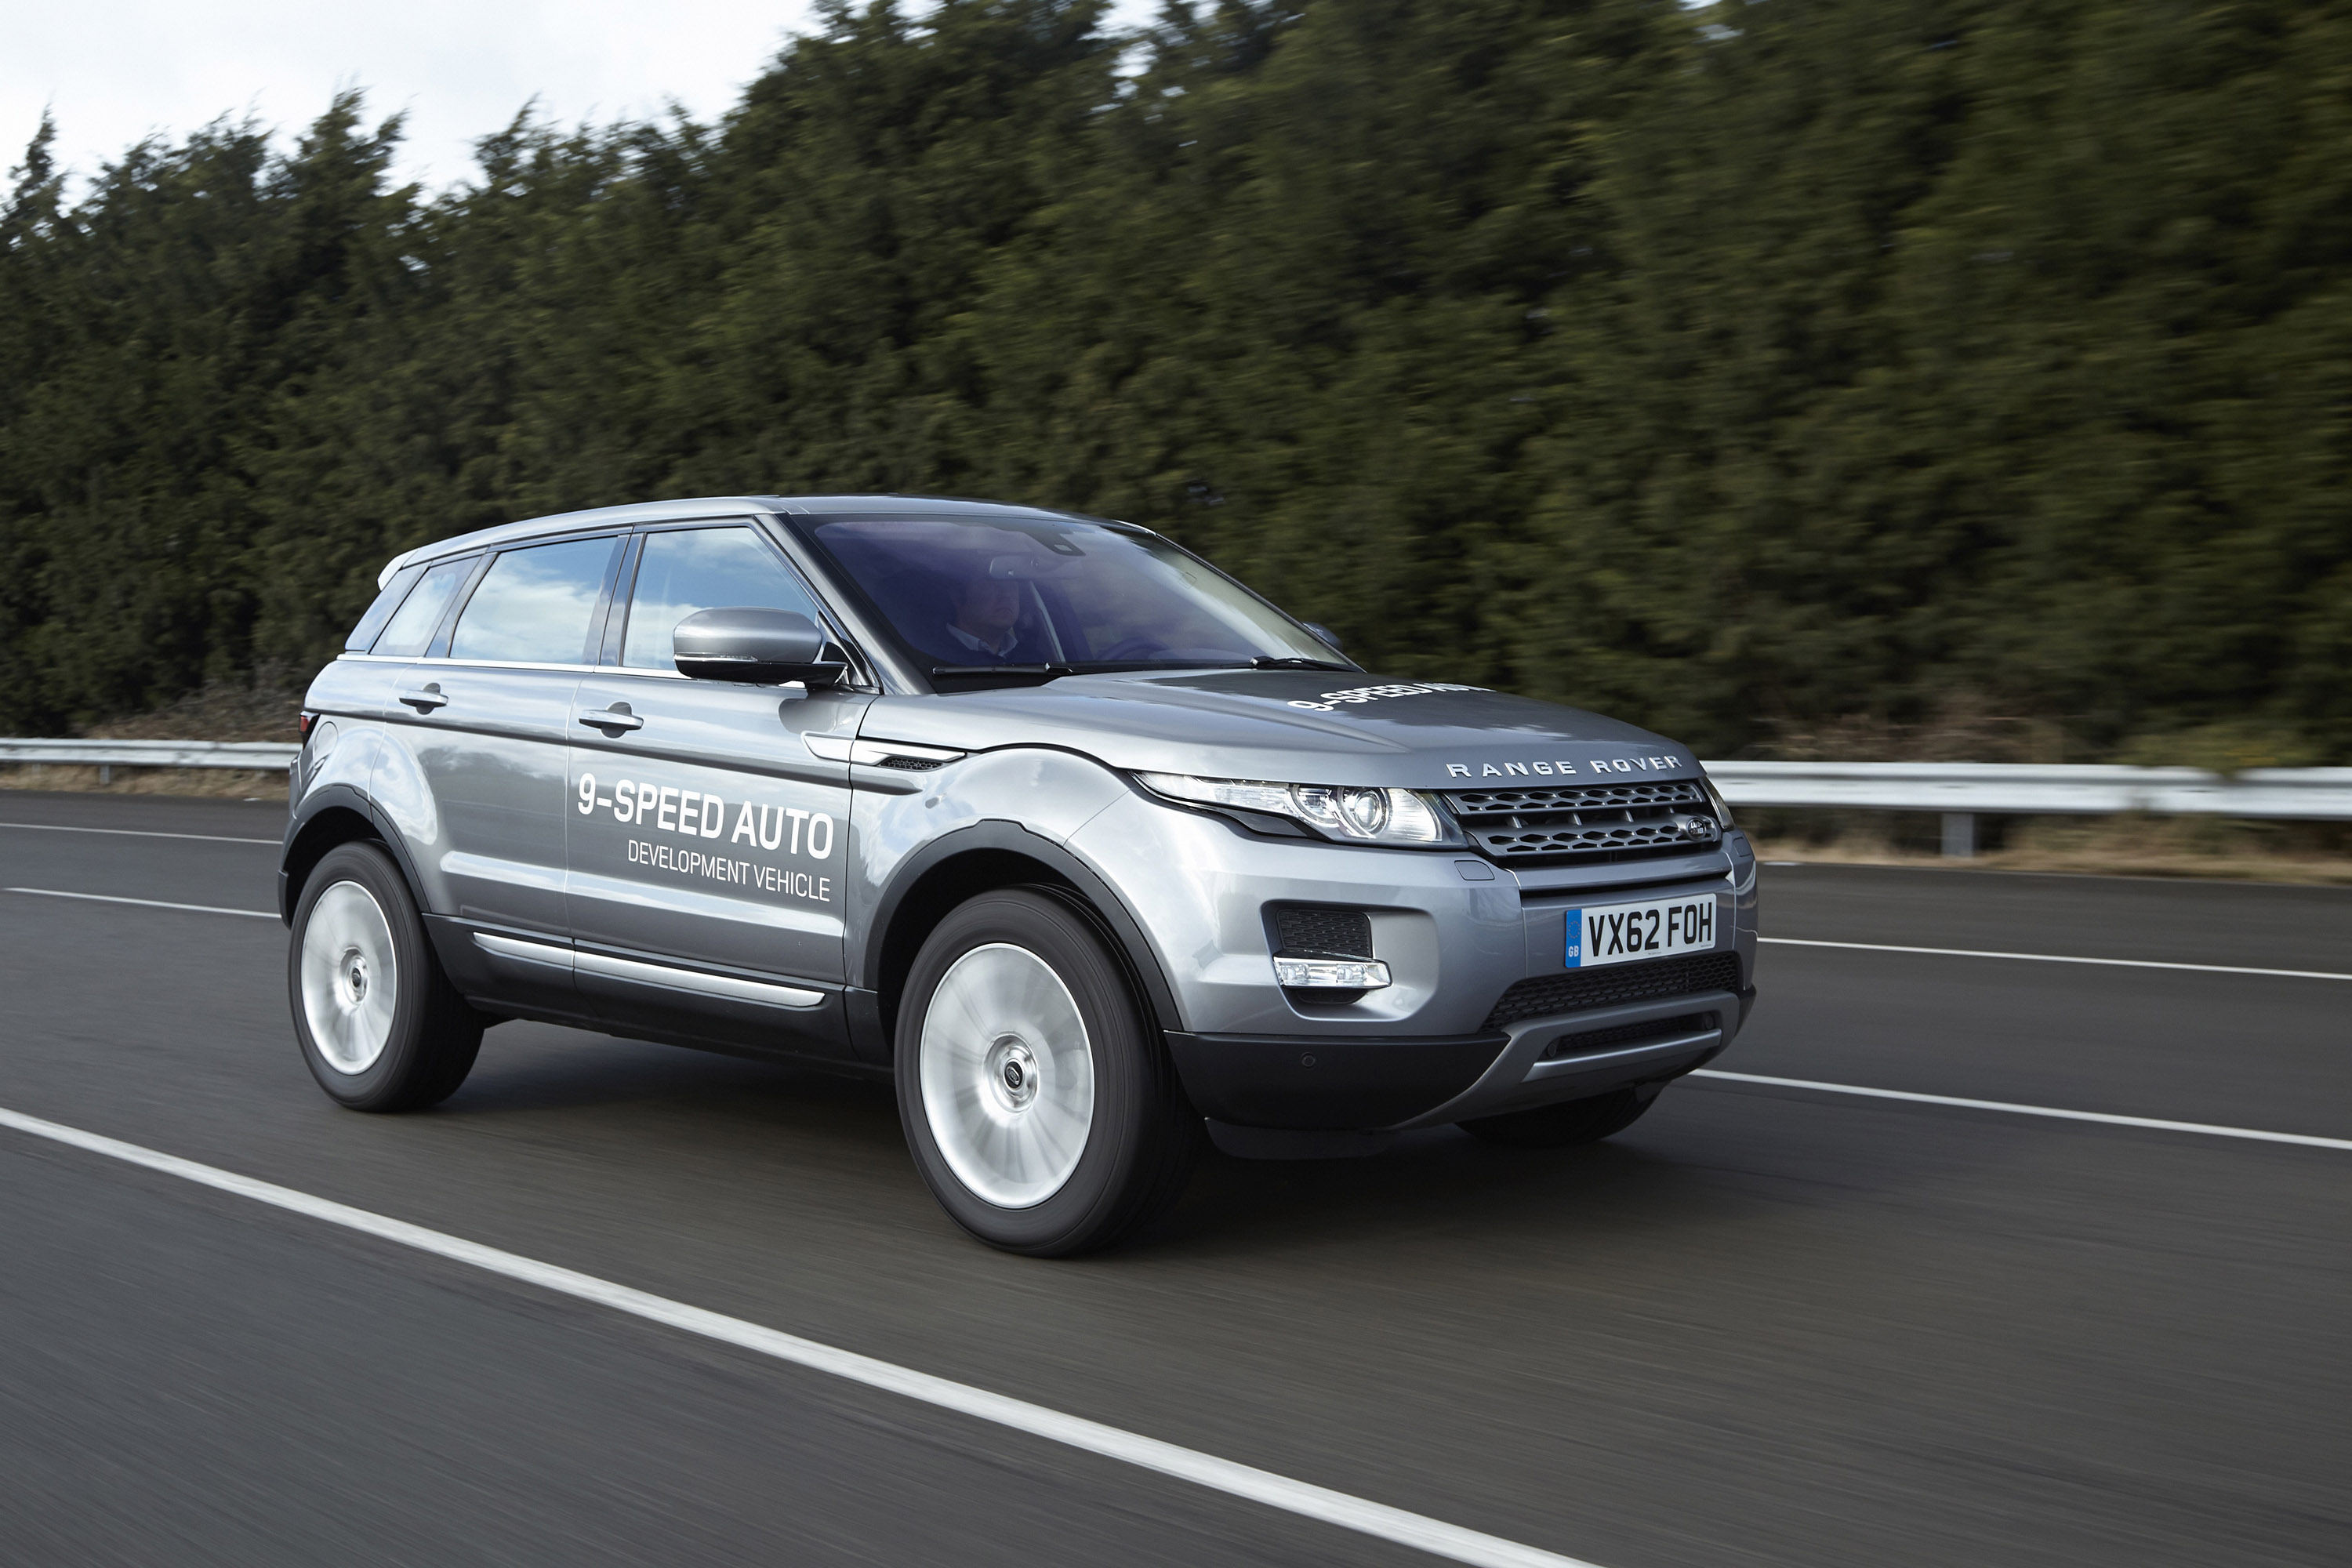 range rover evoque equipped with world s first 9 speed. Black Bedroom Furniture Sets. Home Design Ideas